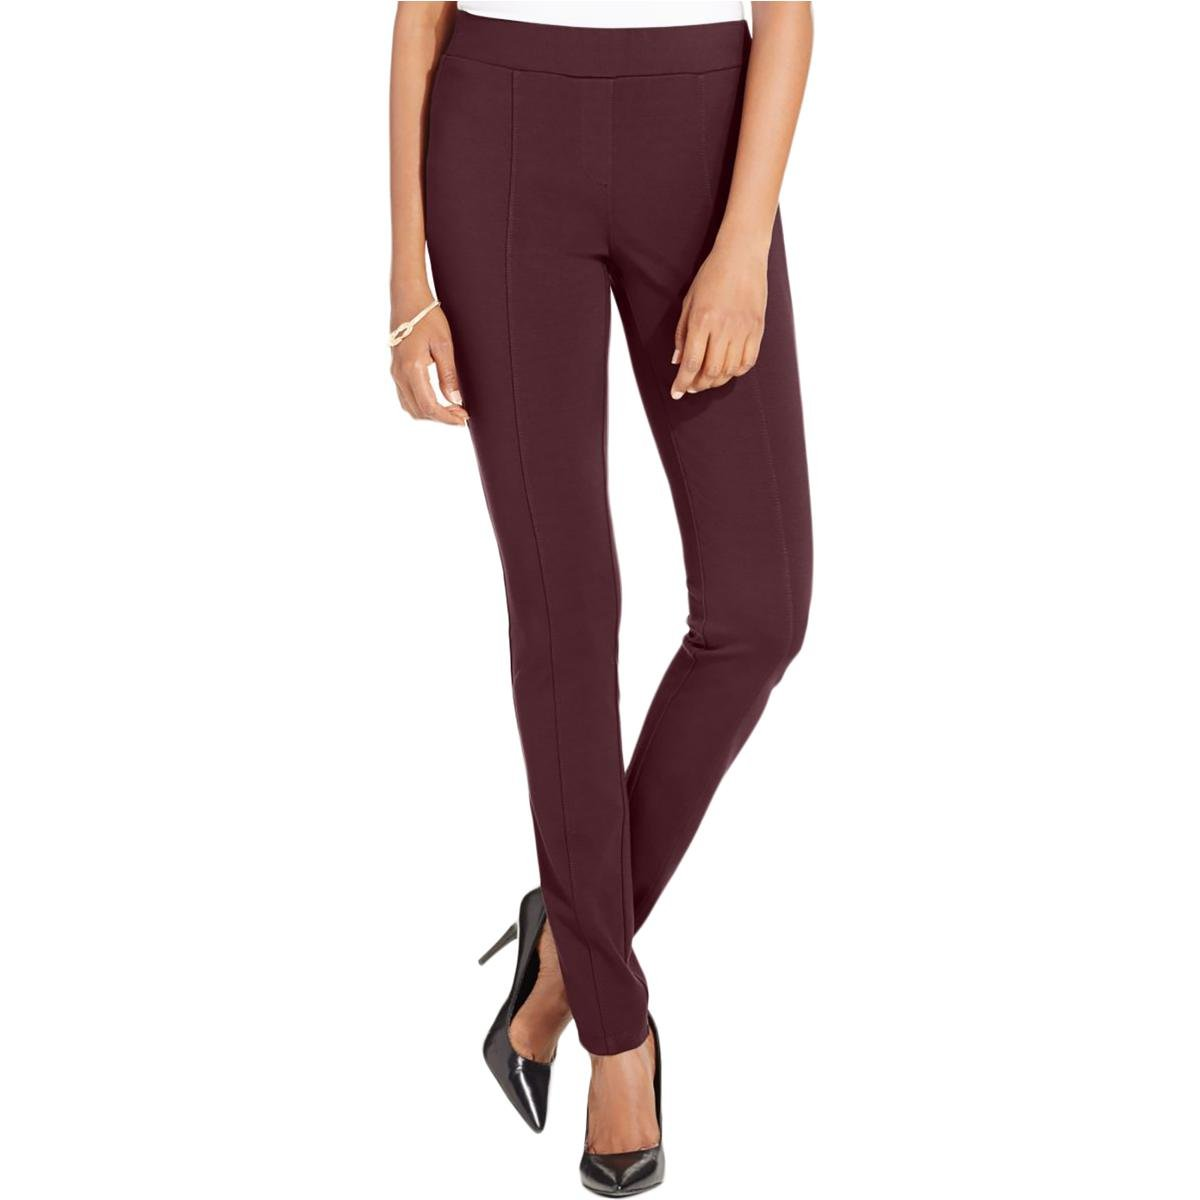 Style & Co... Petite Stretch Ponte Leggings in Rich Truffle Brown (Petite Small)